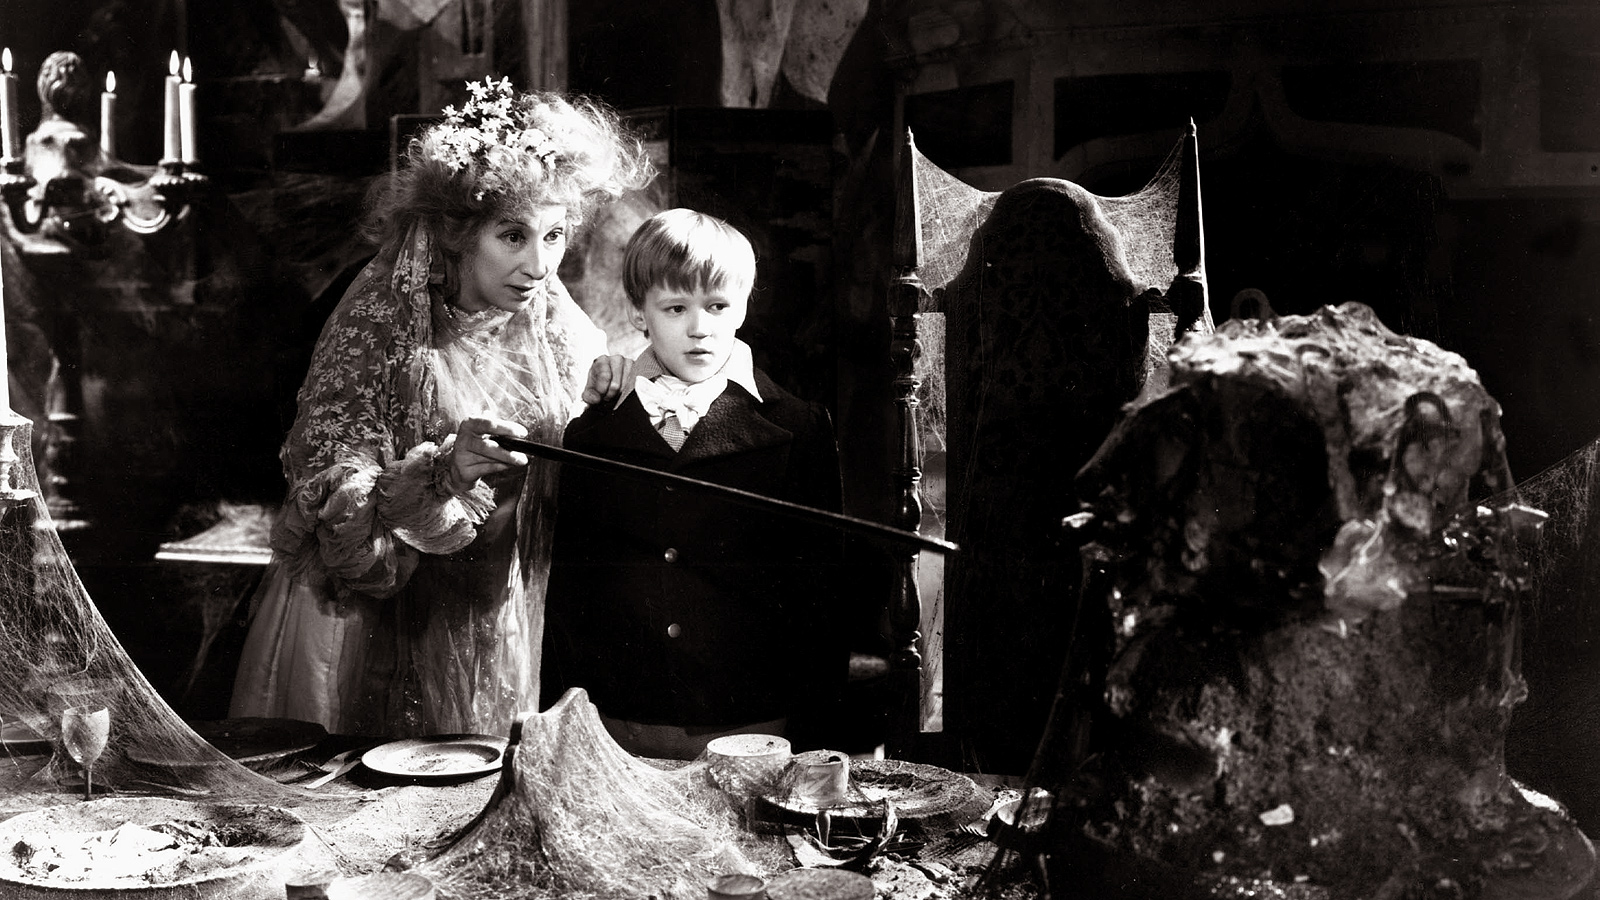 The Gothic in Great Expectations